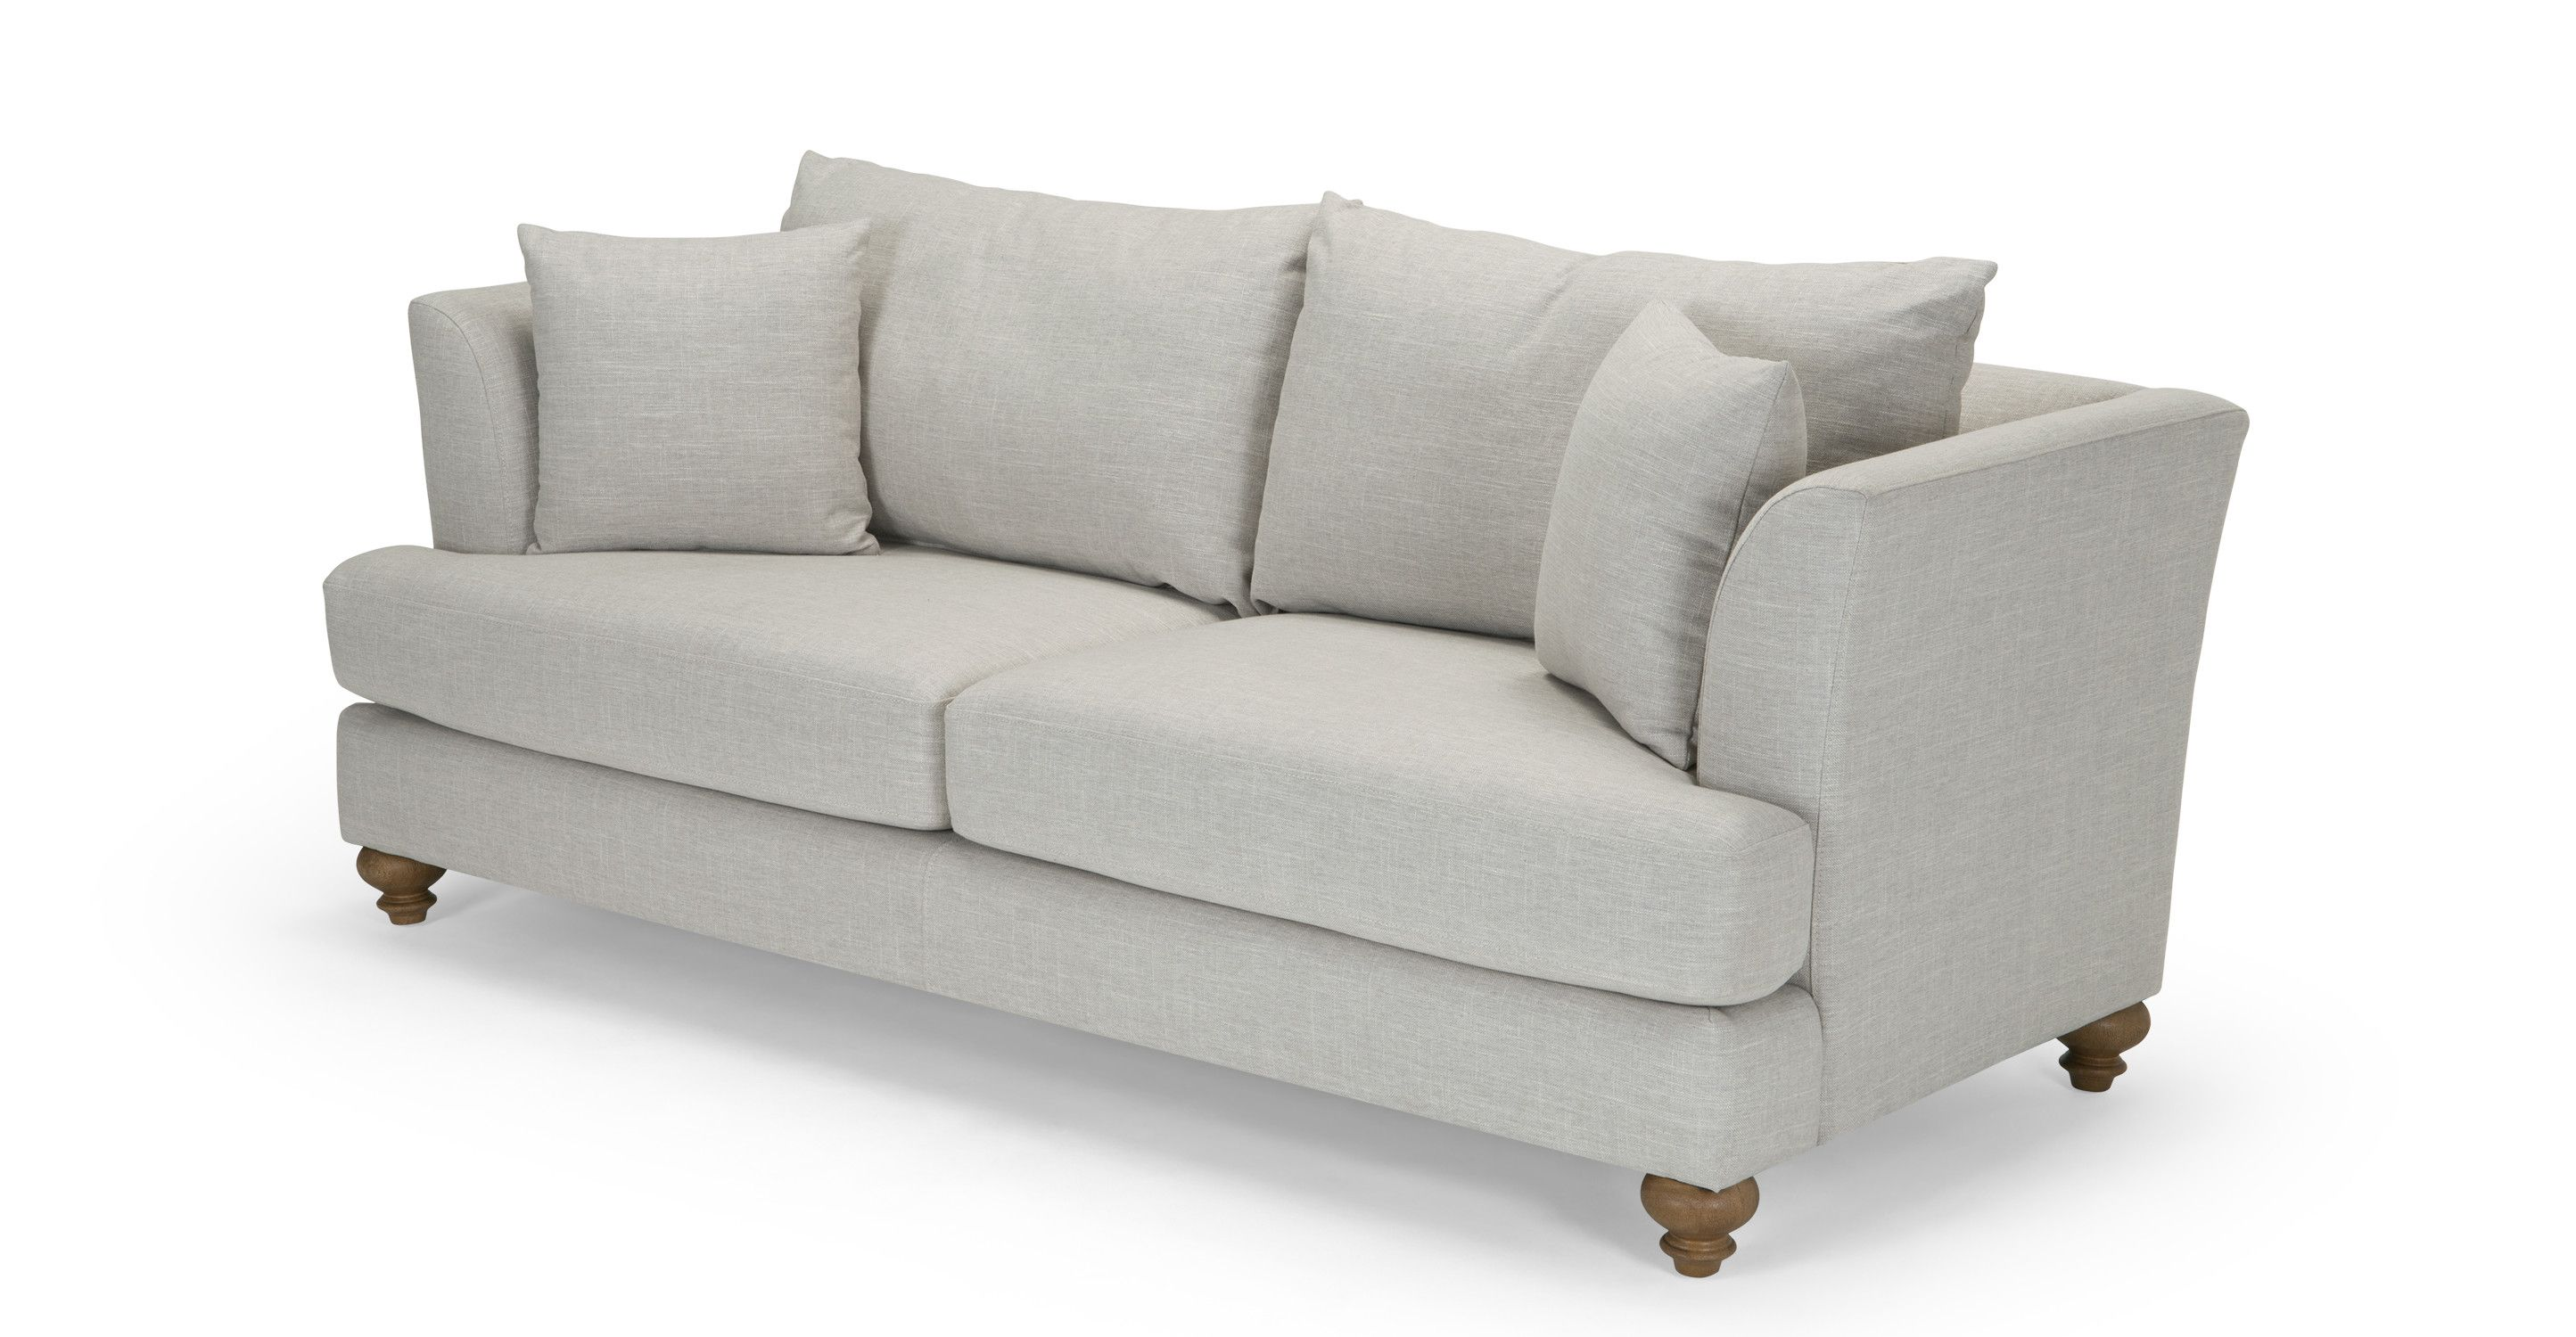 Ordinaire Elliott 3 Seater Sofa, Chic Grey